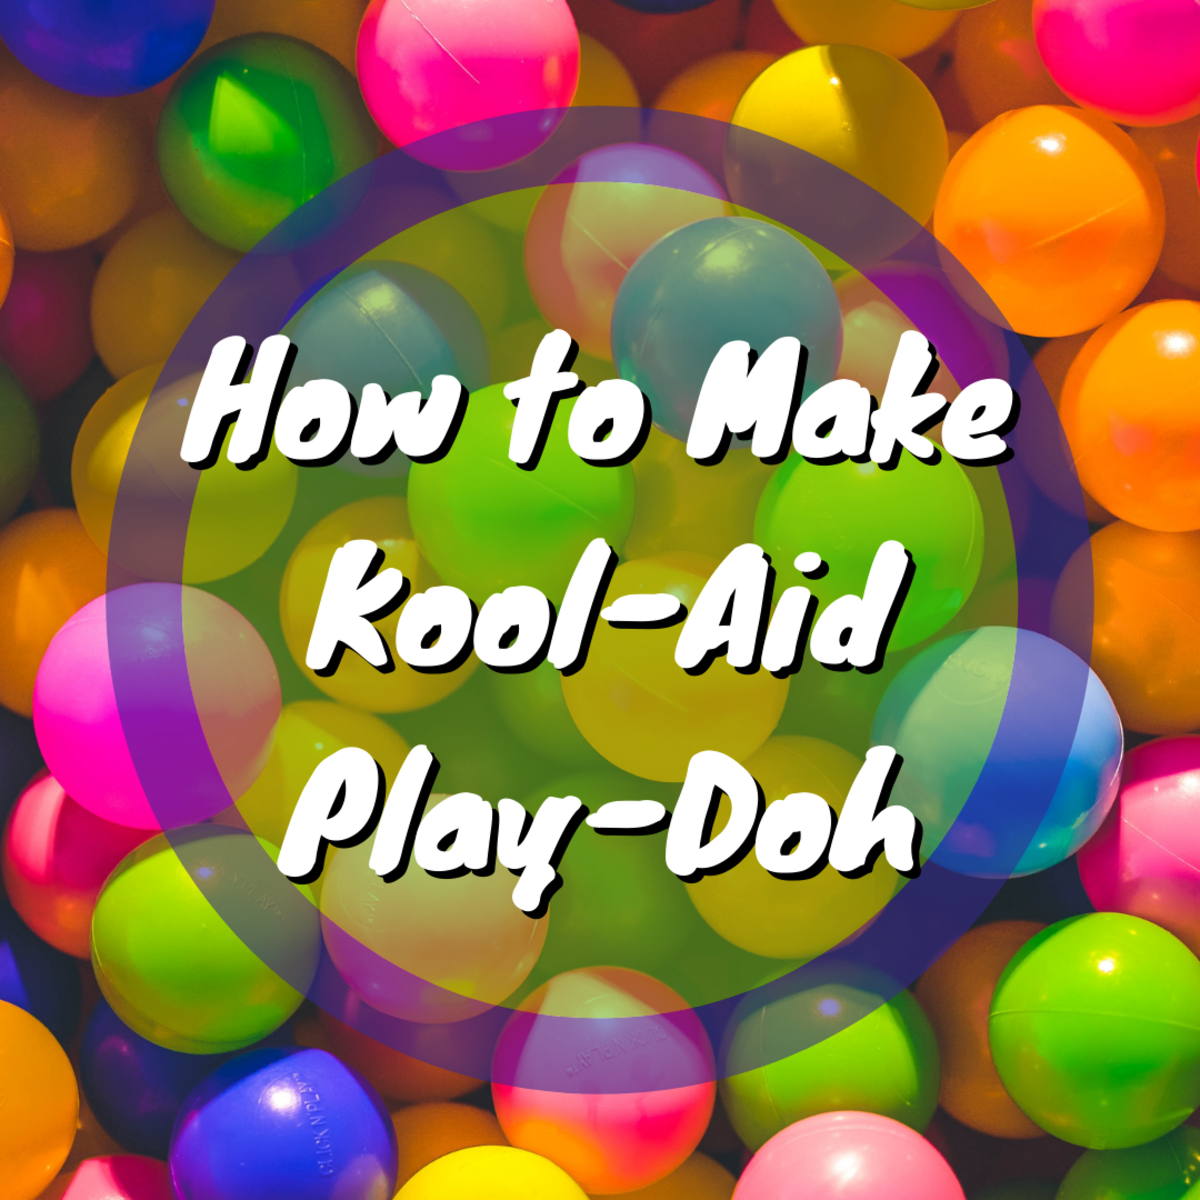 Learn how to make play-doh using kool-aid using this simple guide. Kids will love this craft.